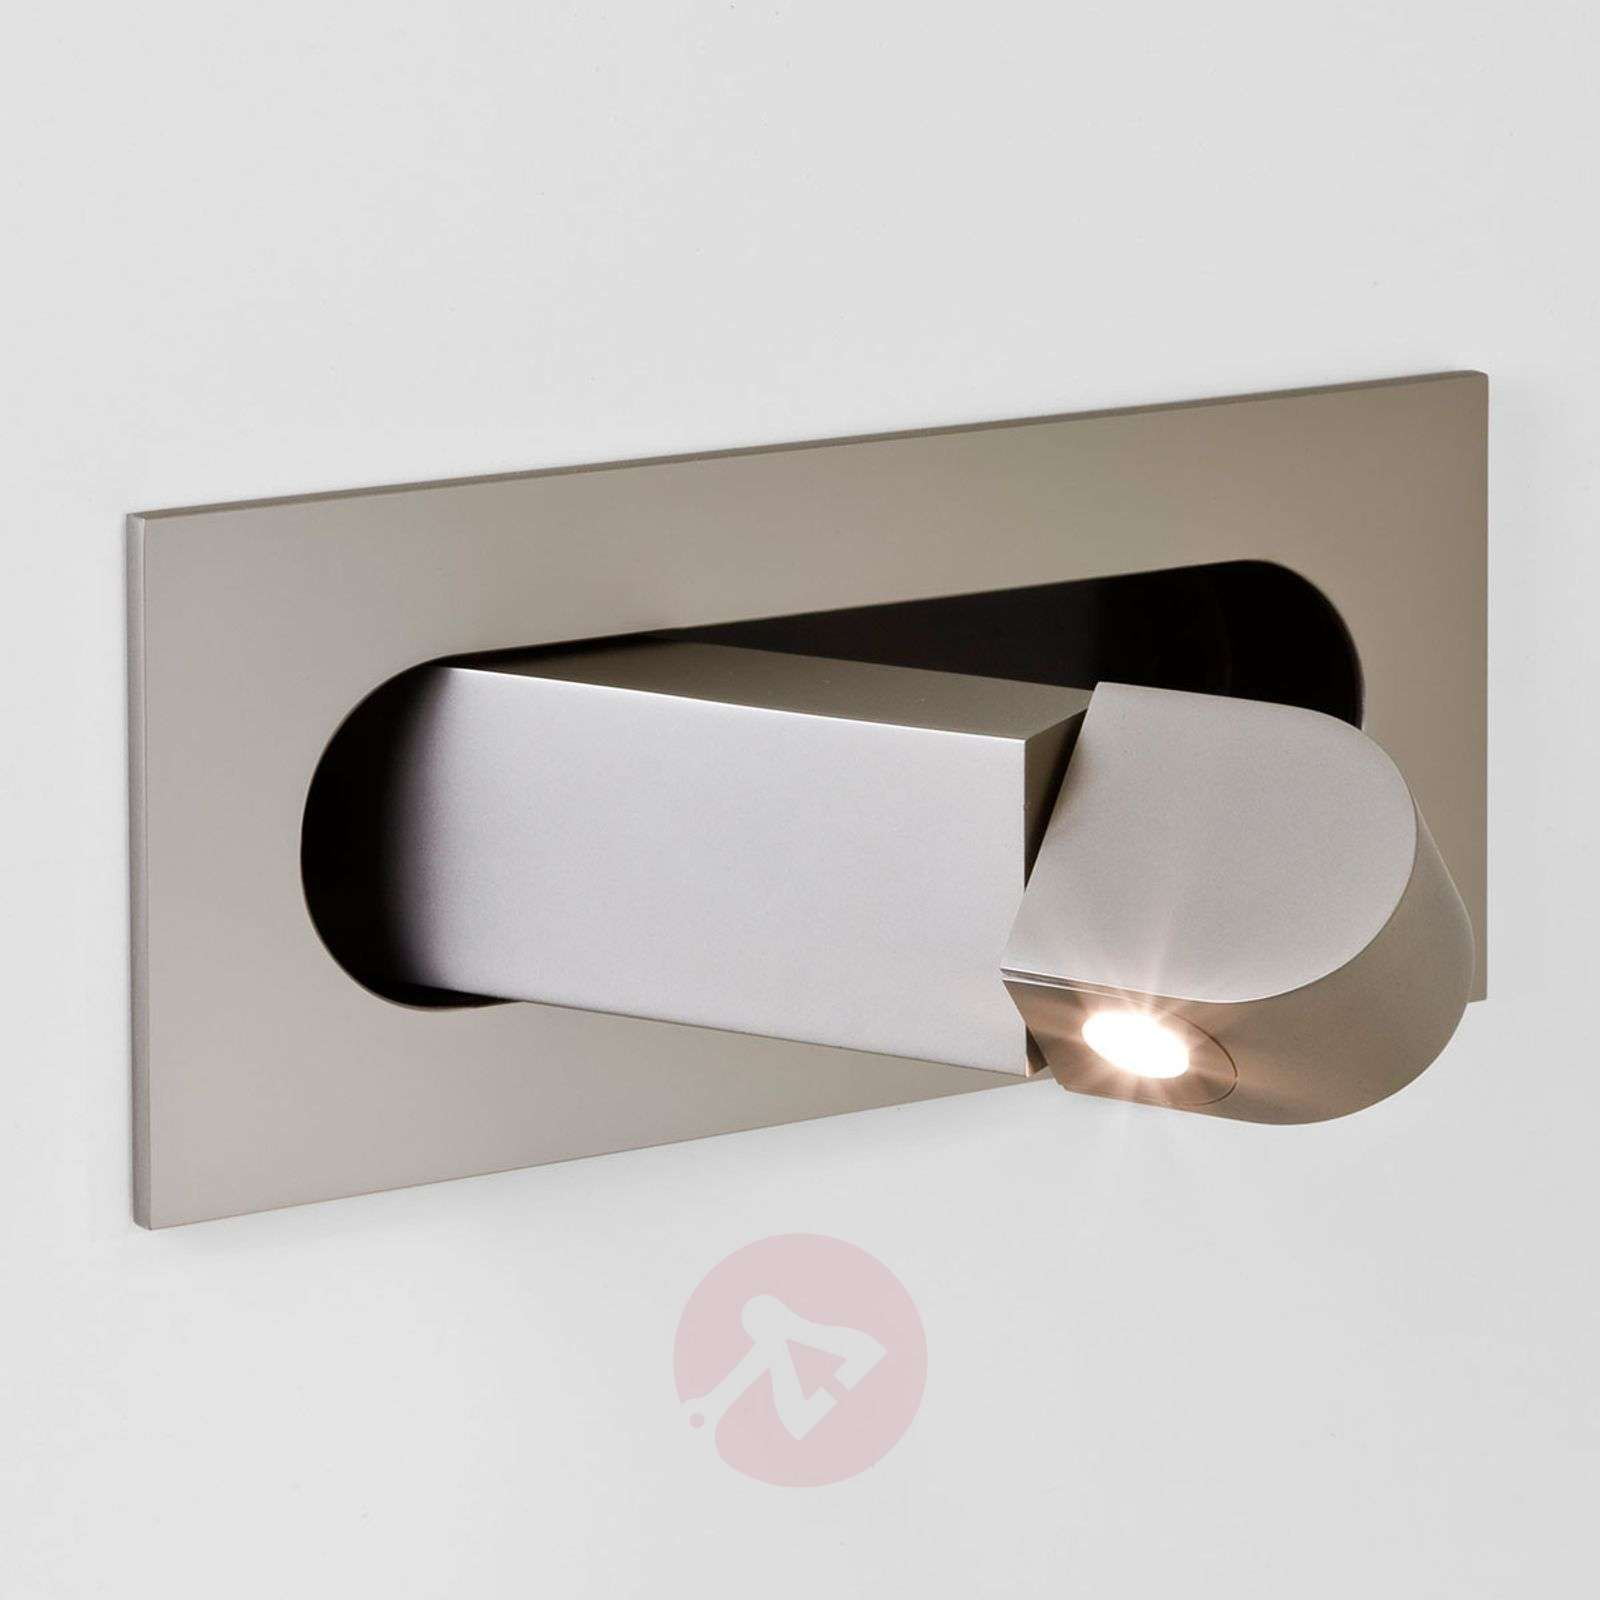 Applique LED Digit da lettura, nichel-1020476-04